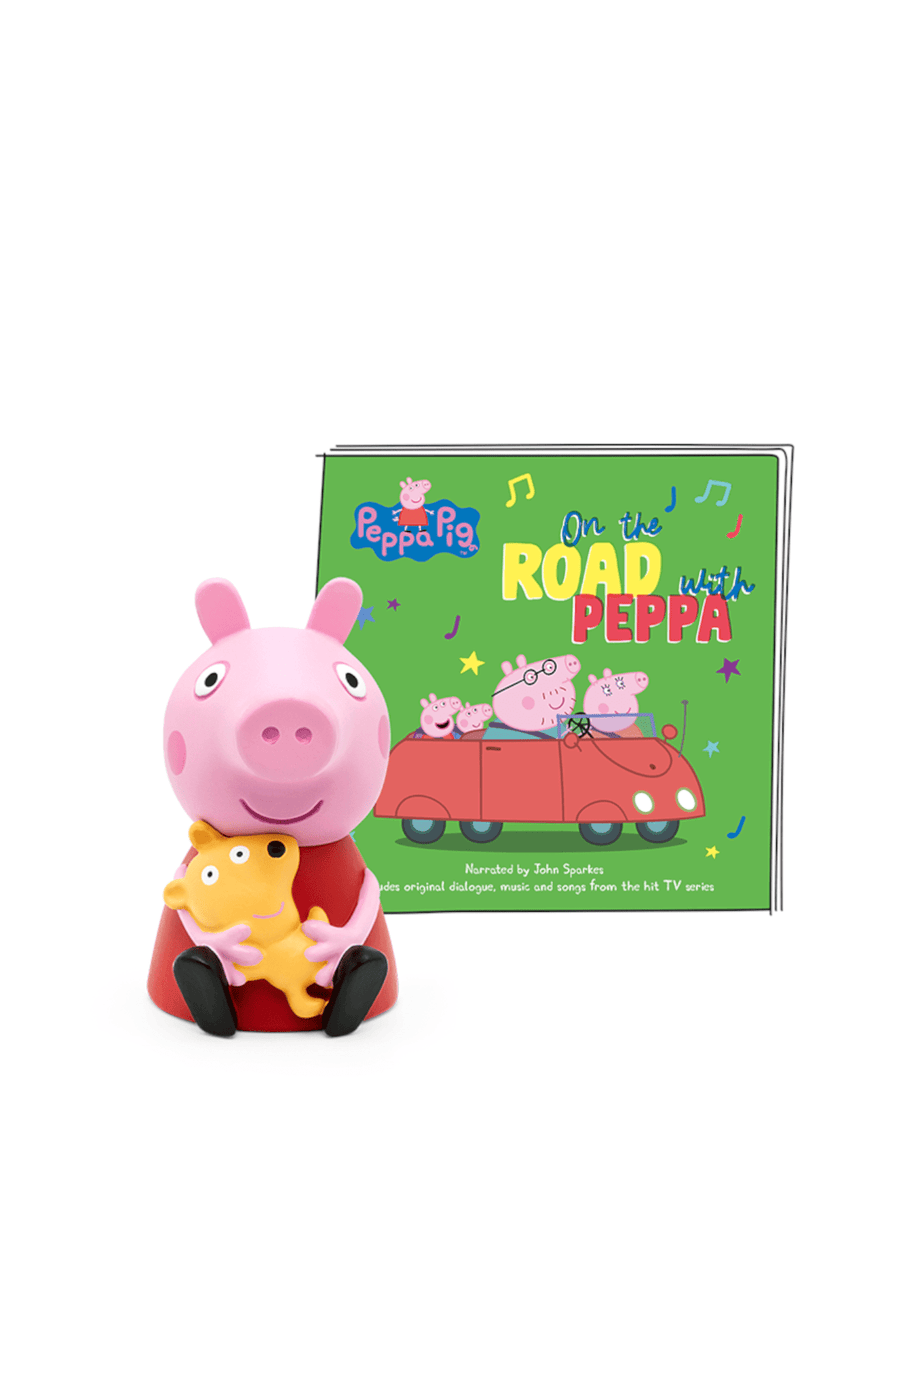 Tonies Peppa Pig - On the Road with Peppa